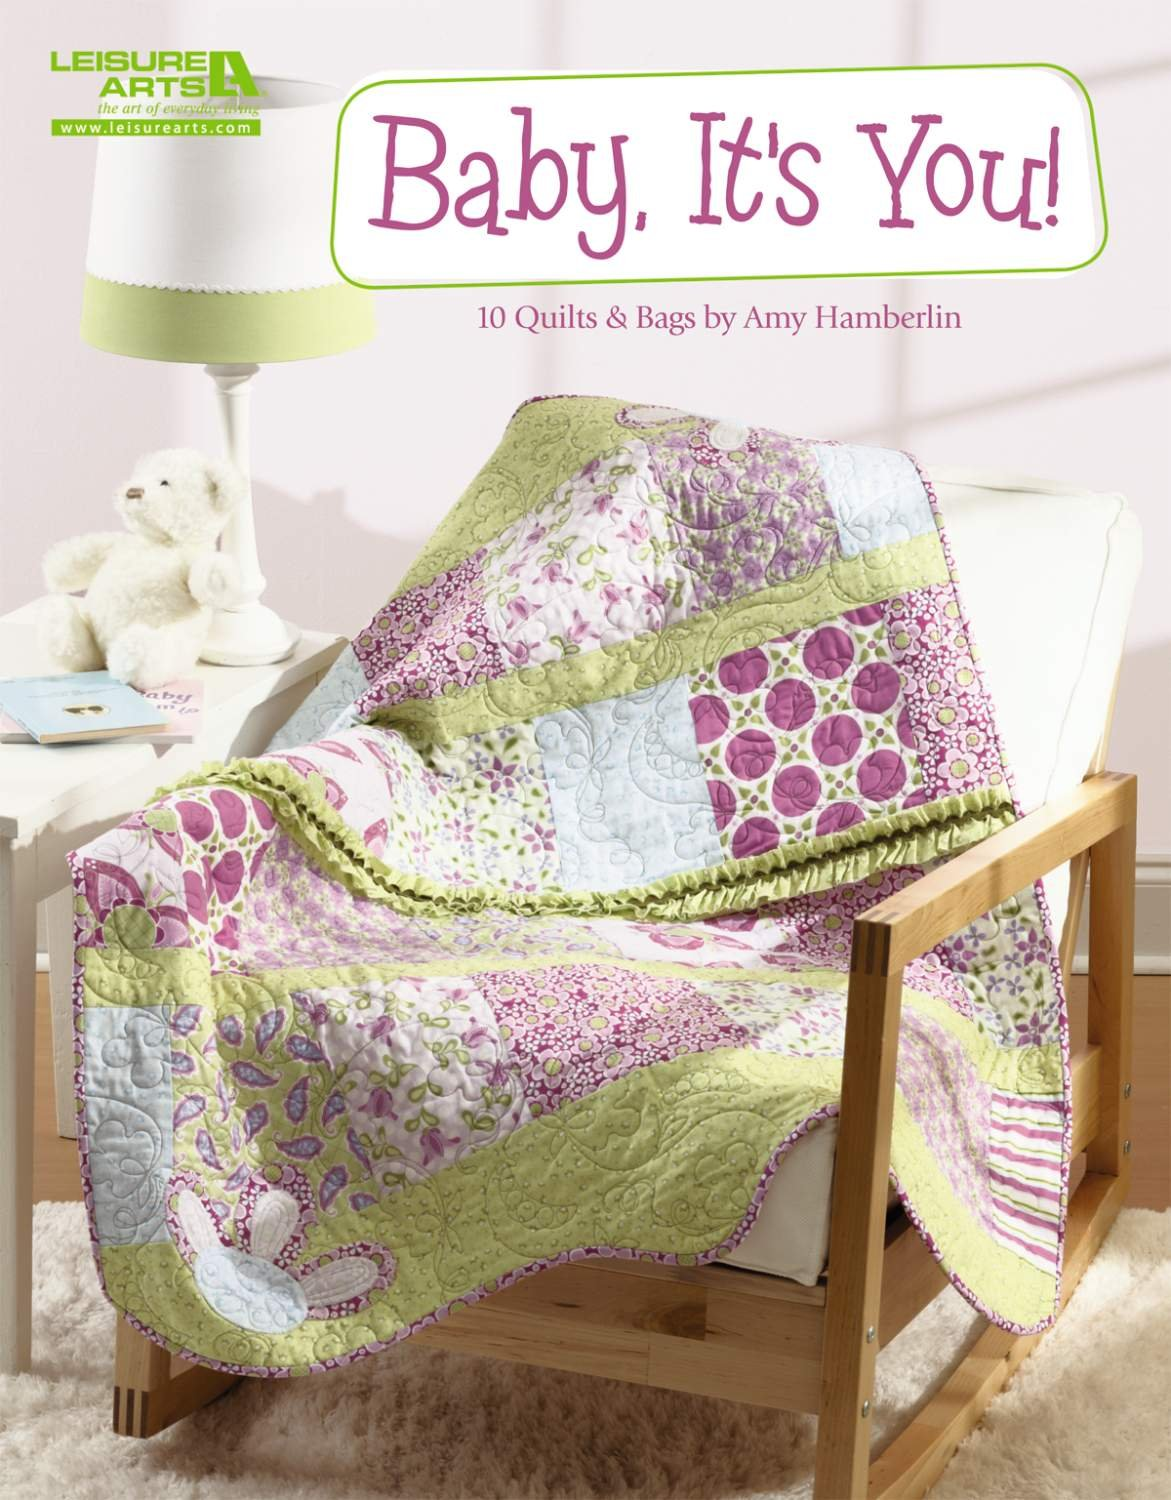 Baby Quilts Bags Leisure Arts product image